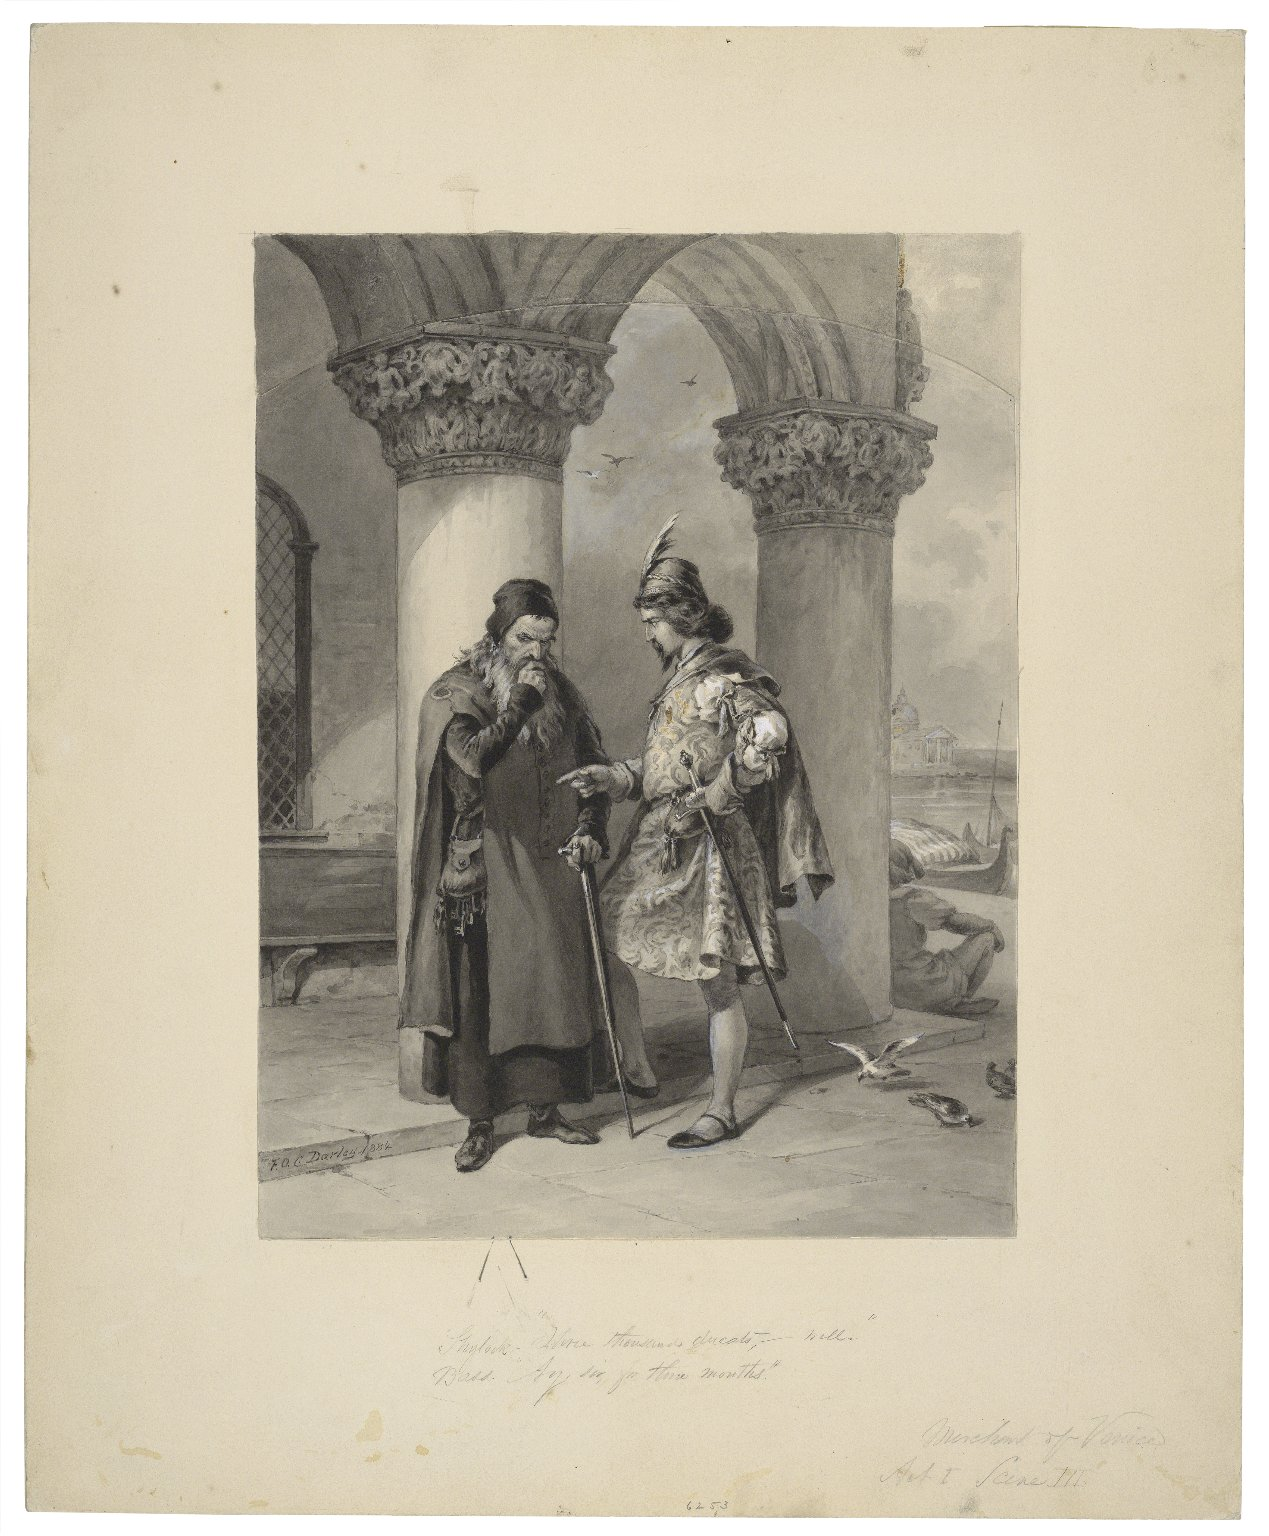 The Merchant of Venice 3.1 (Folger Shakespeare Library)